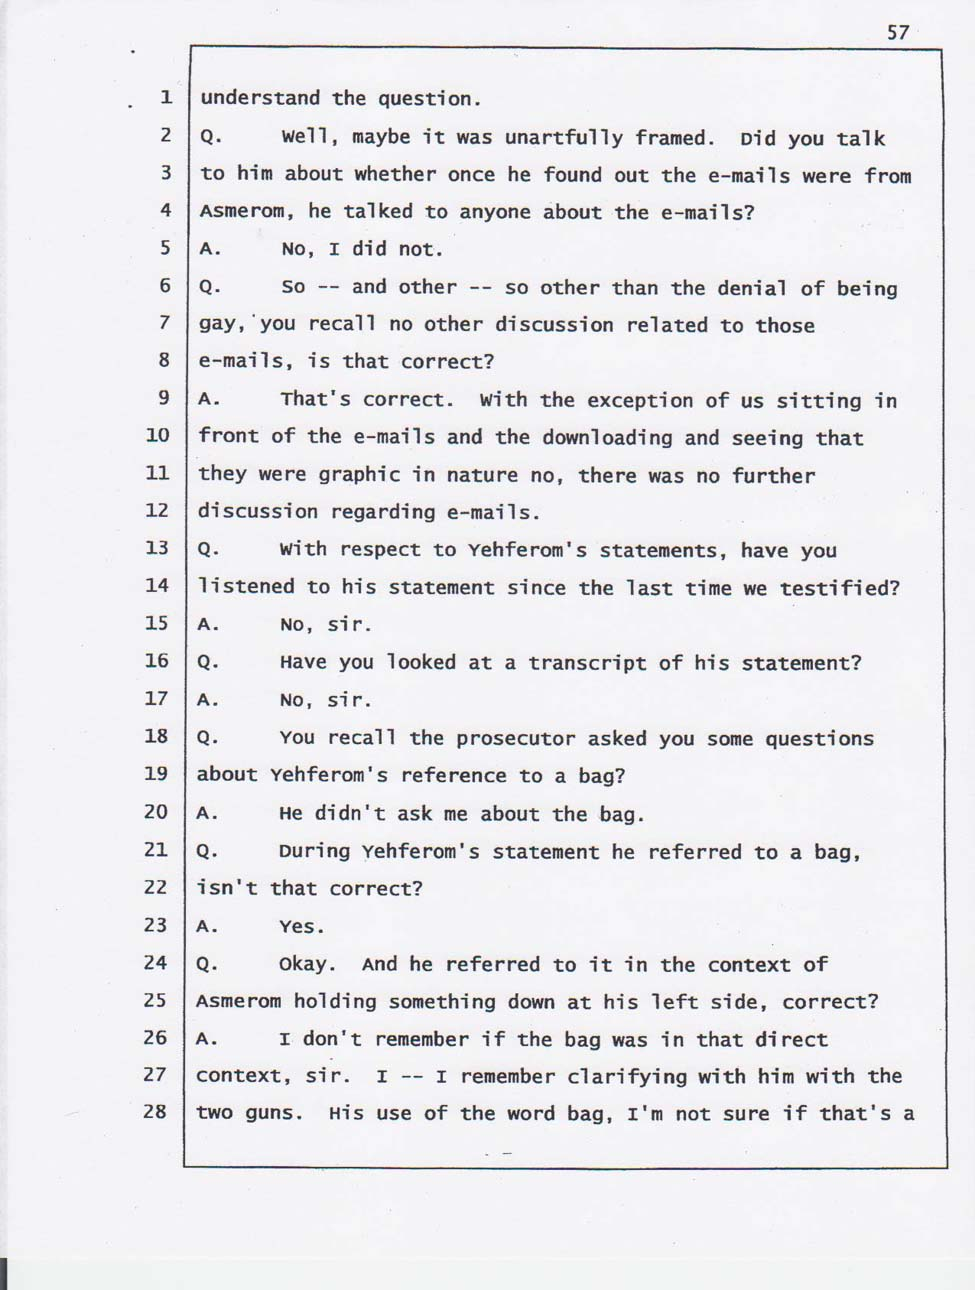 Sergeant Cruz's testimony April 11, 2008.